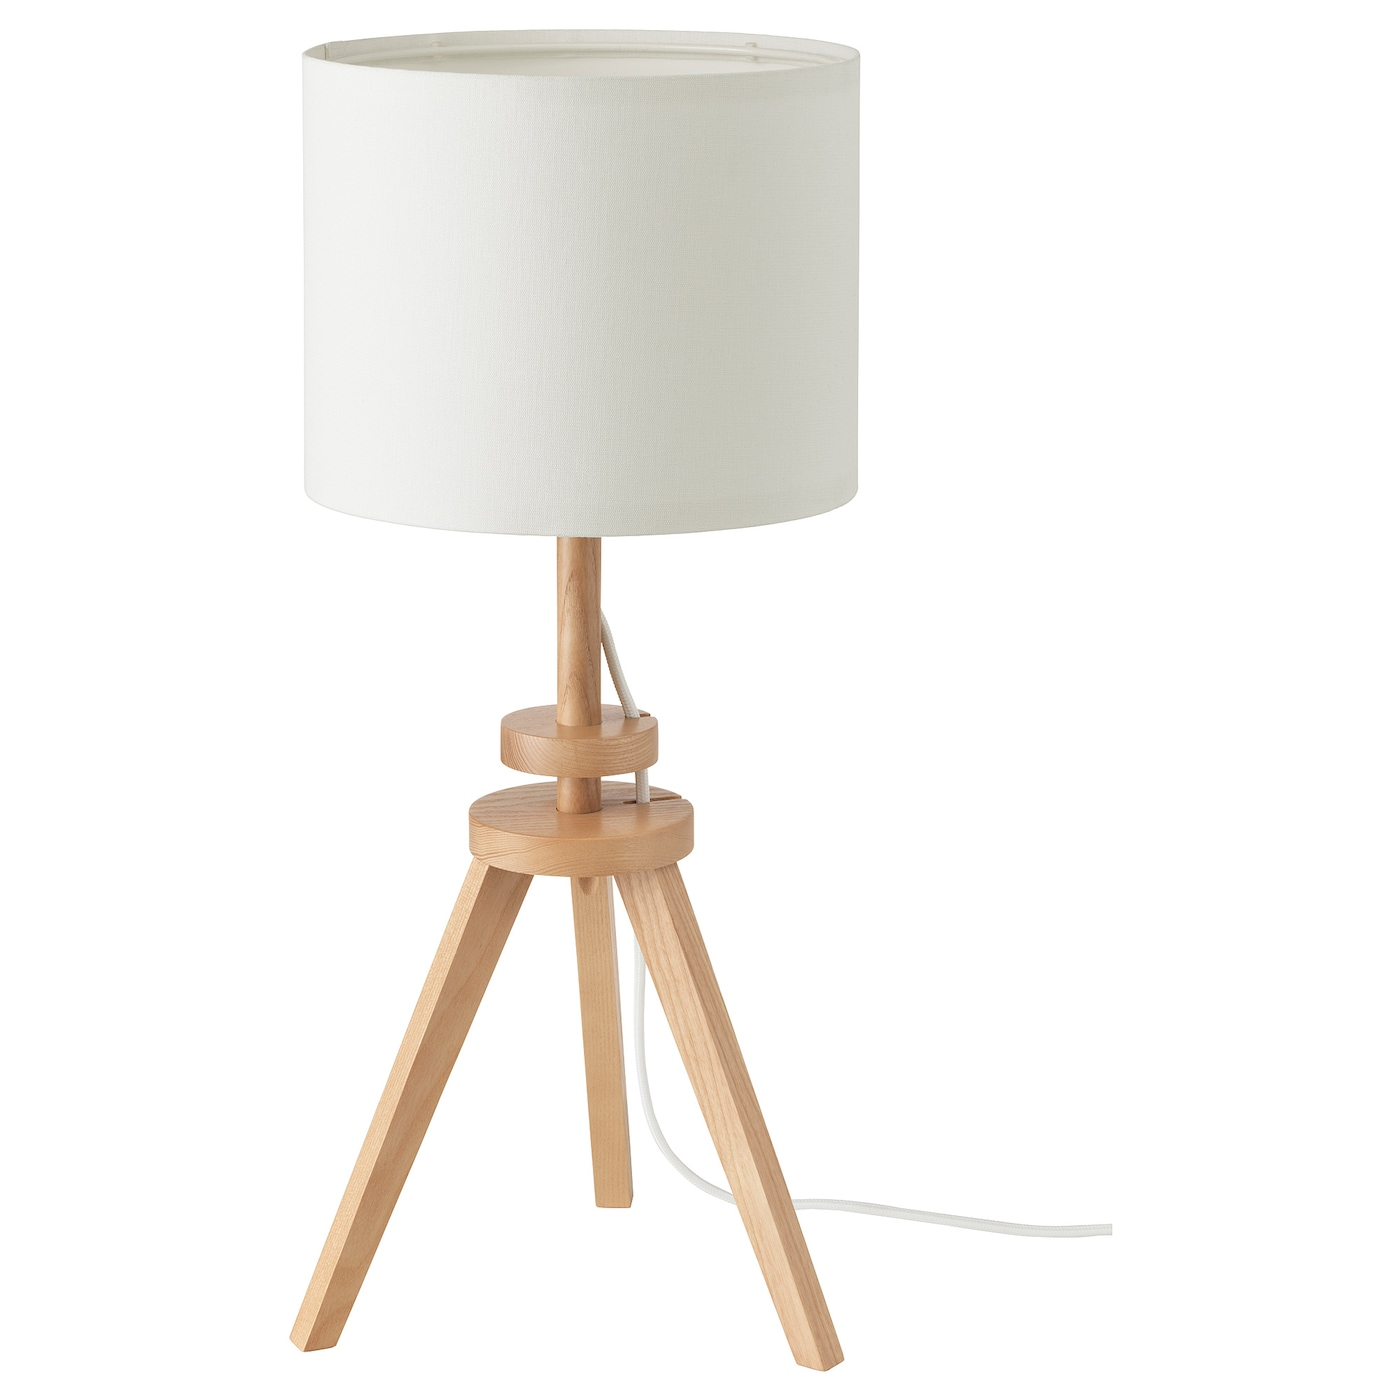 IKEA LAUTERS table lamp